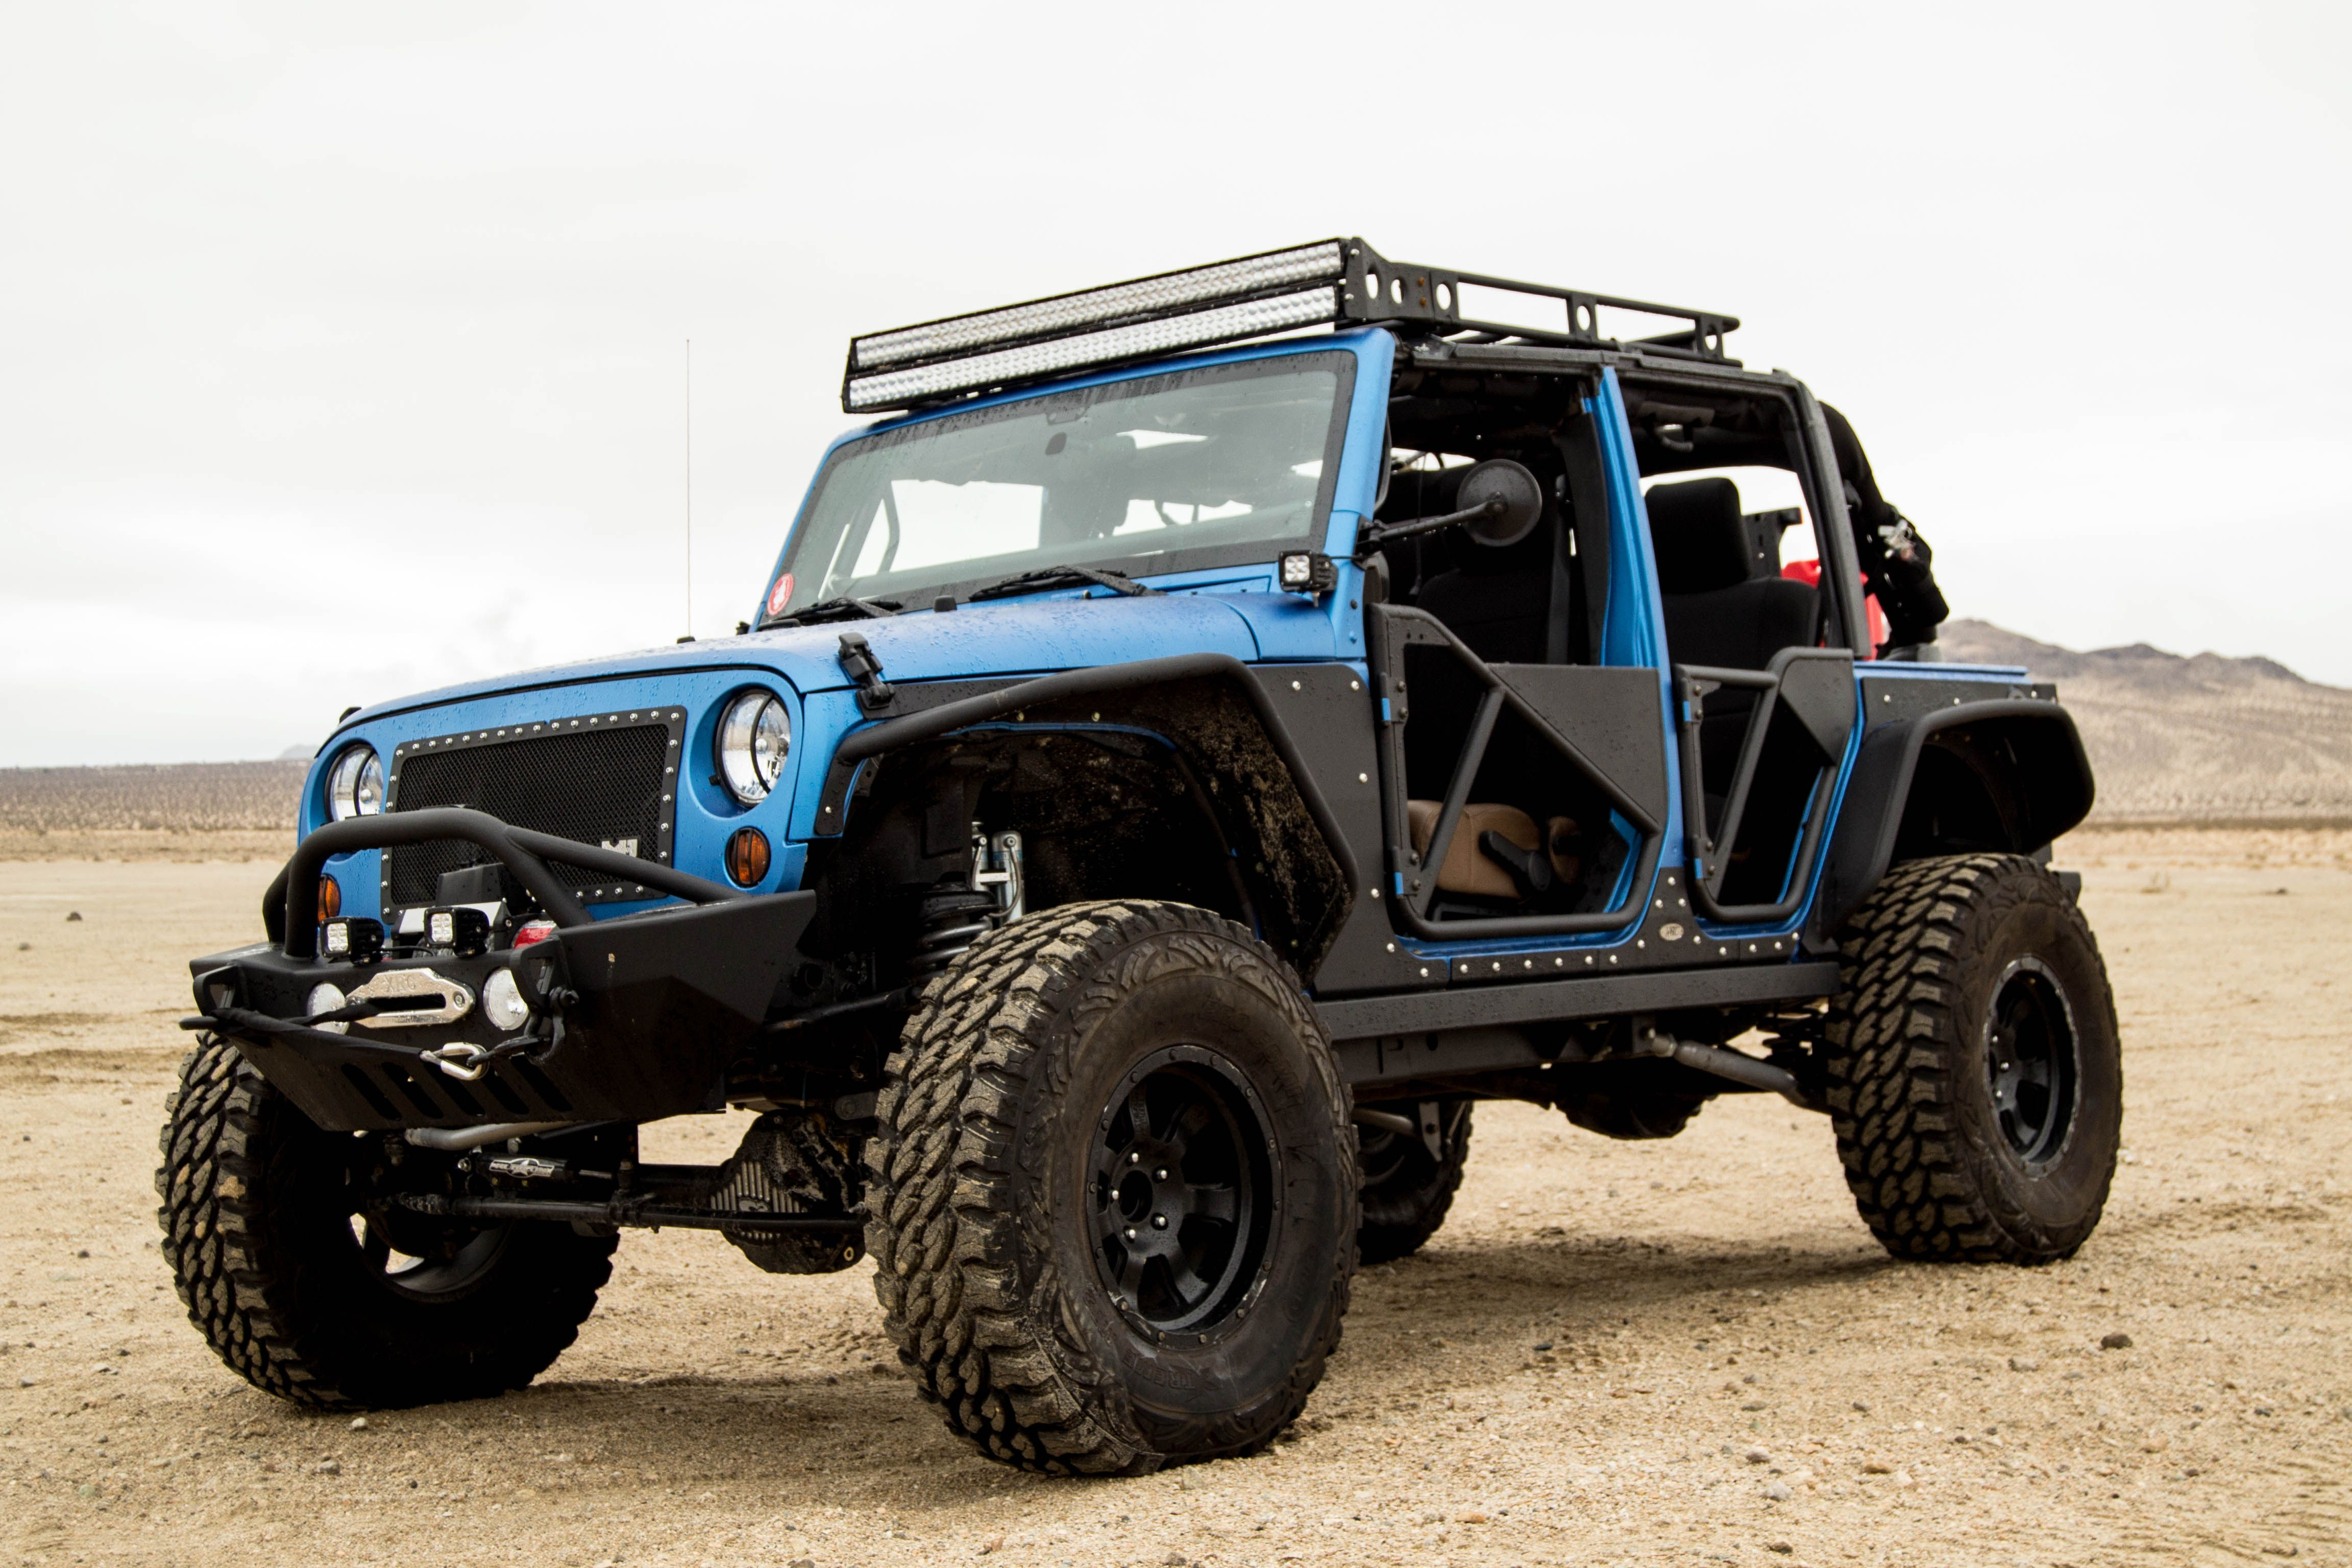 Jeep Wrangler Jk Offroad On Bilstein 5160 Reservoir Shocks With A 3 5 Lift Kit Pro Comp Wheels And Tires Smittybilt Jeep Wrangler Jeep Wrangler Shocks Jeep